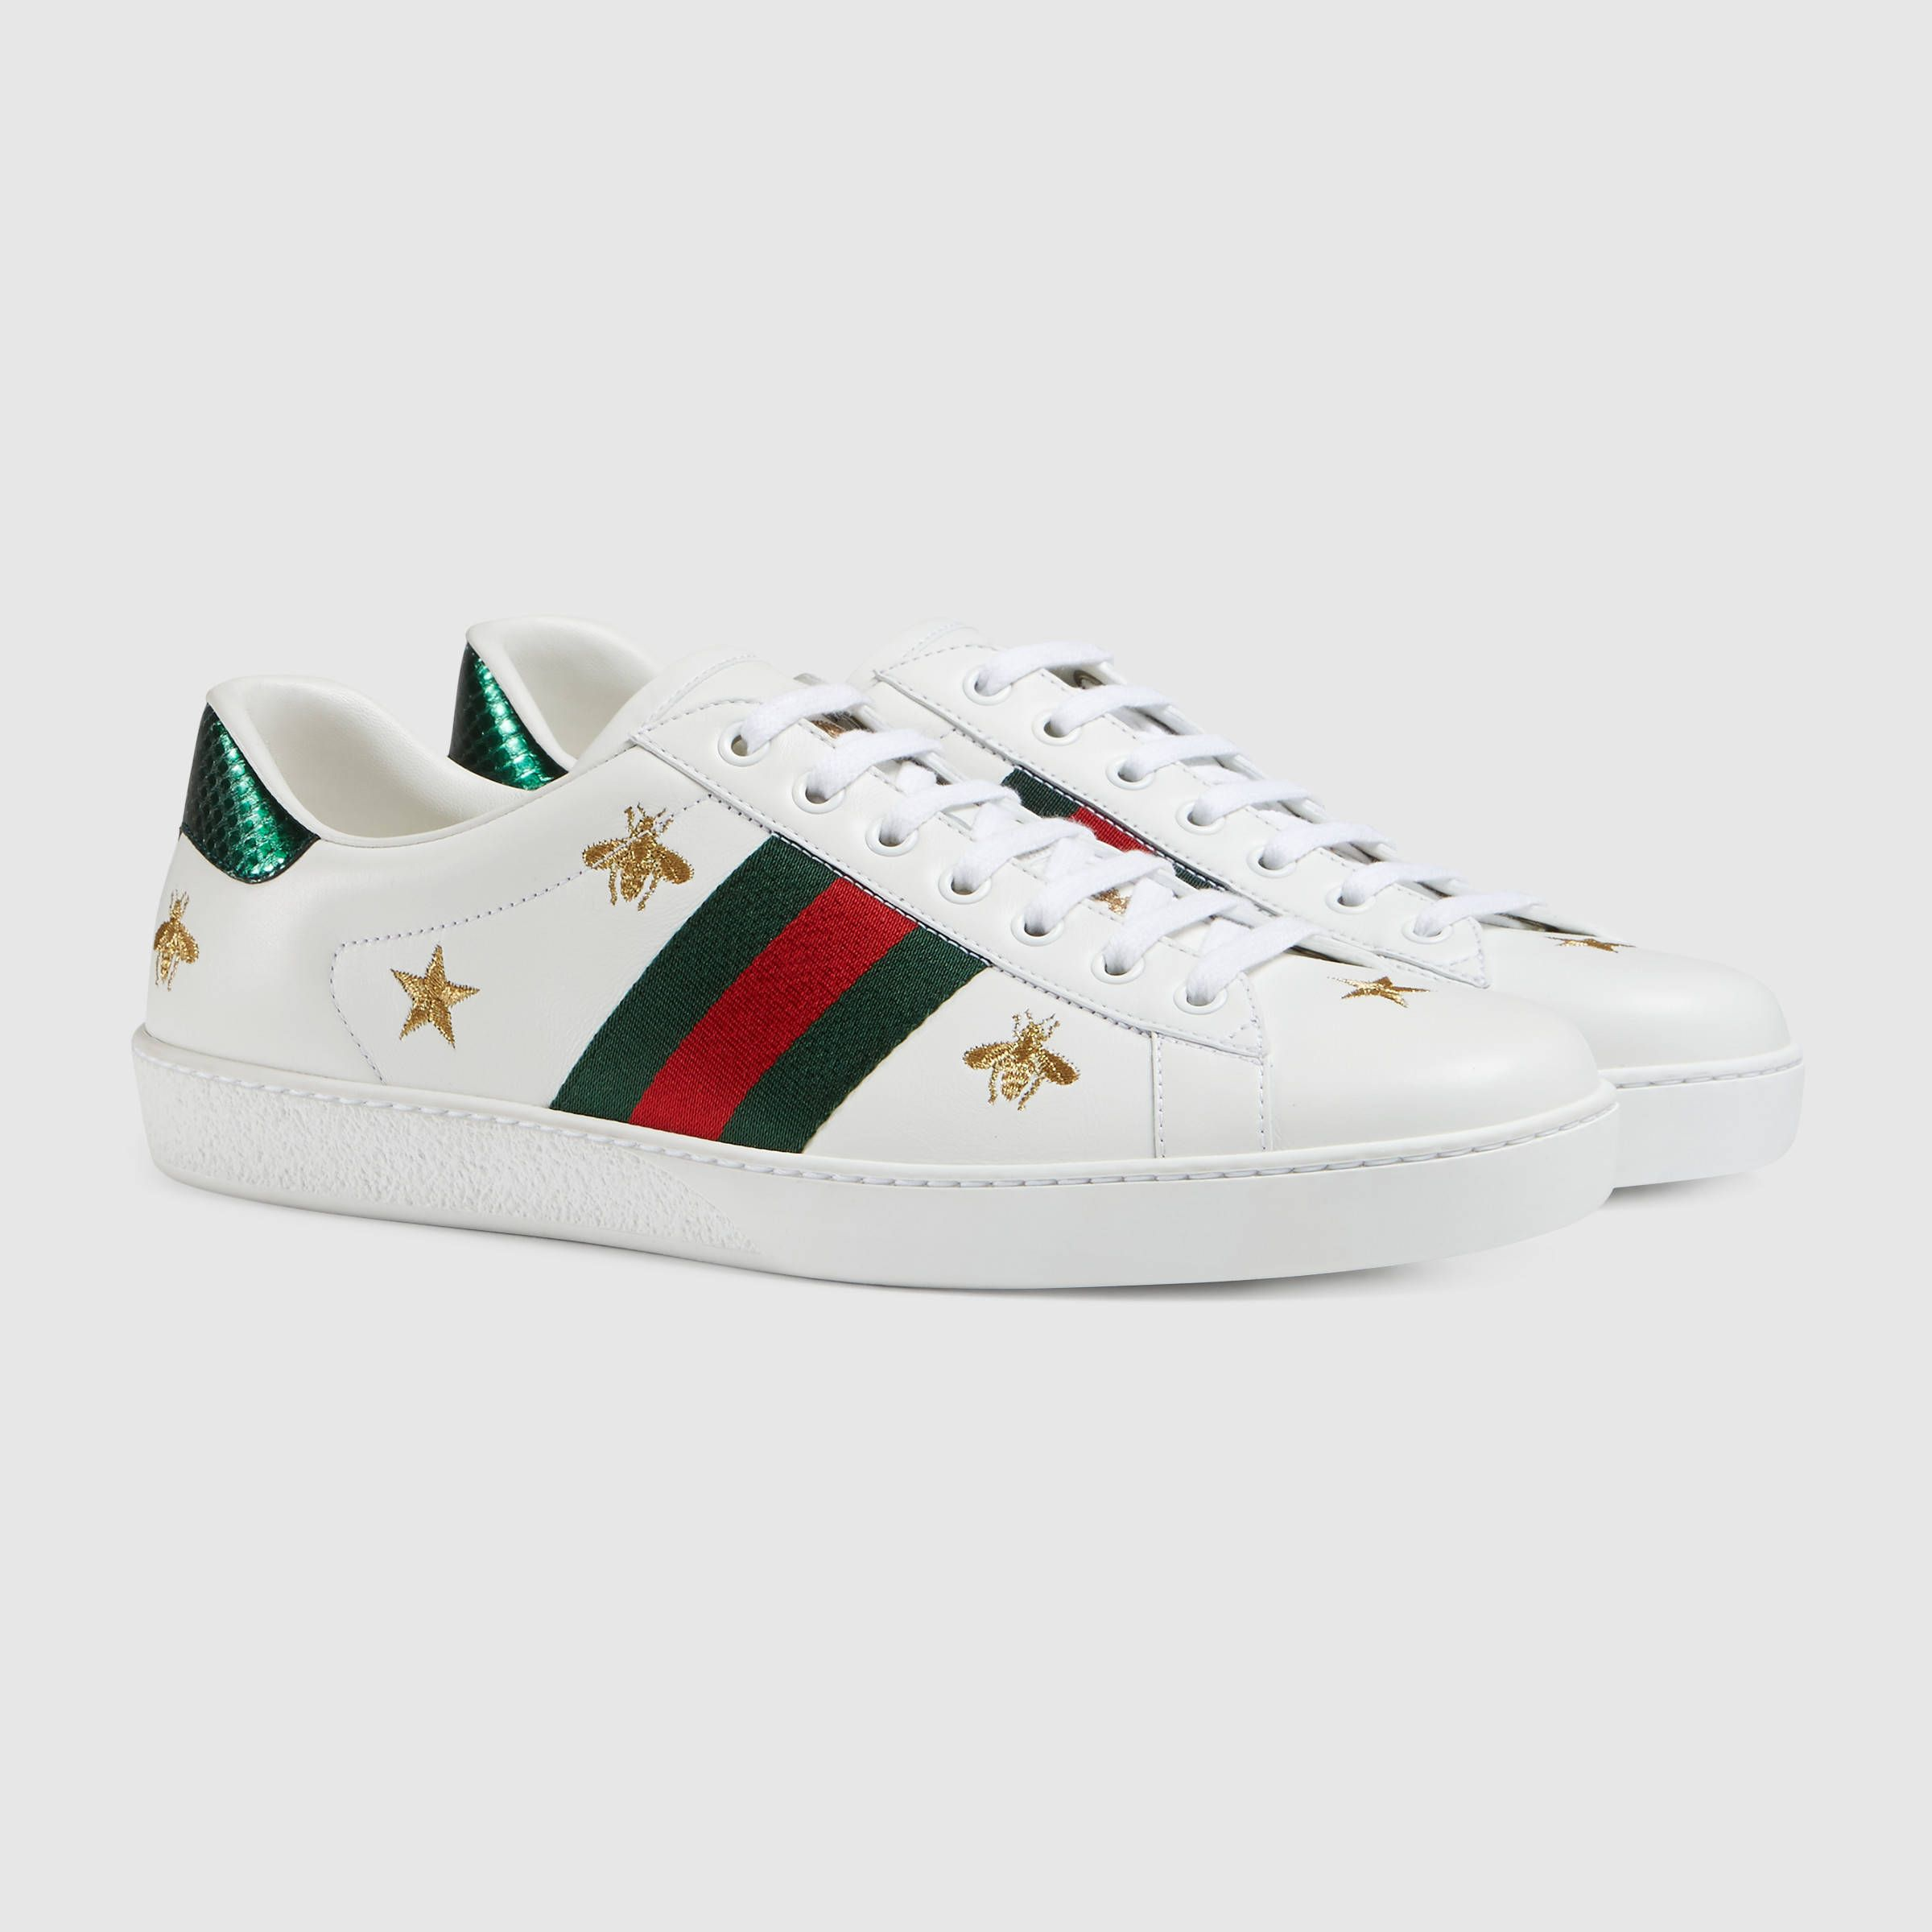 Ace embroidered sneaker   Sneakers Shoes   Sneakers, Gucci, Shoes bfc936a8050